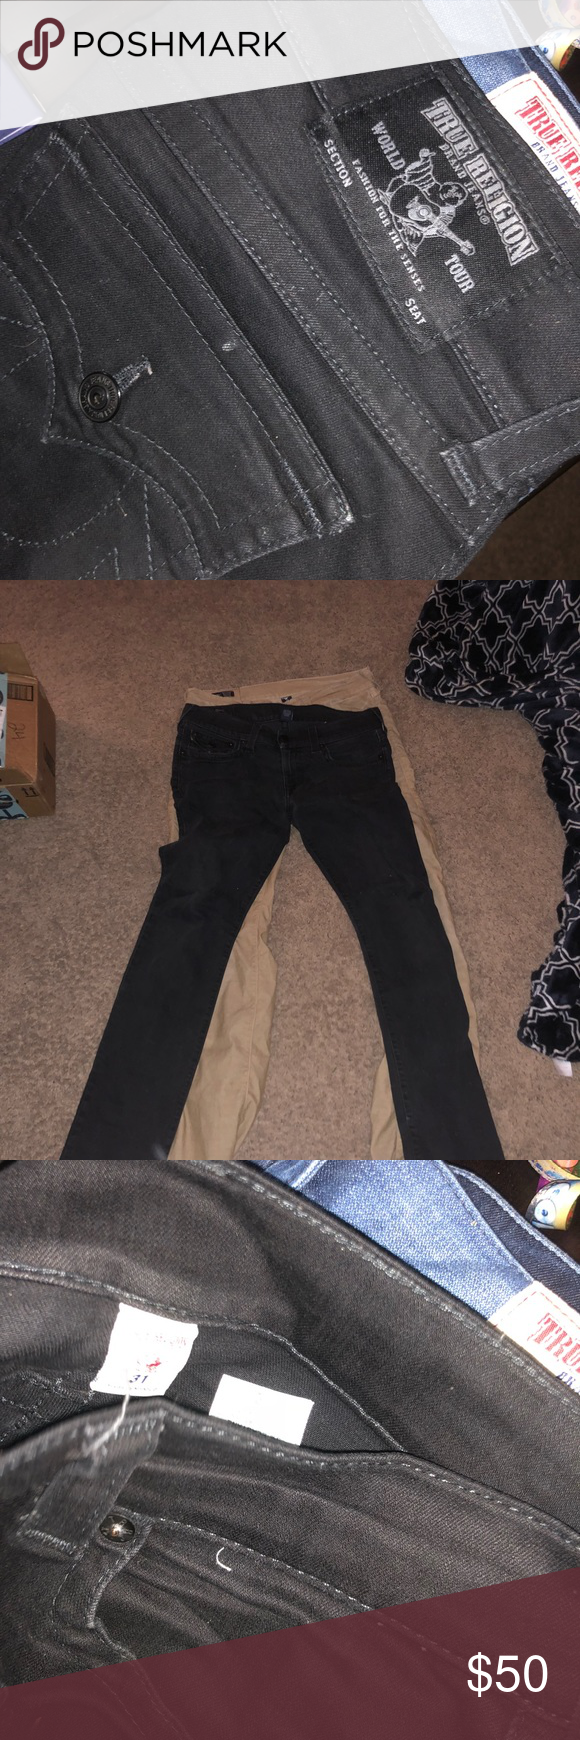 New True Jeans With Burn Hole Small Burn Hole By Zipper New Jeans Jeans Slim True Jeans Jeans Things To Sell